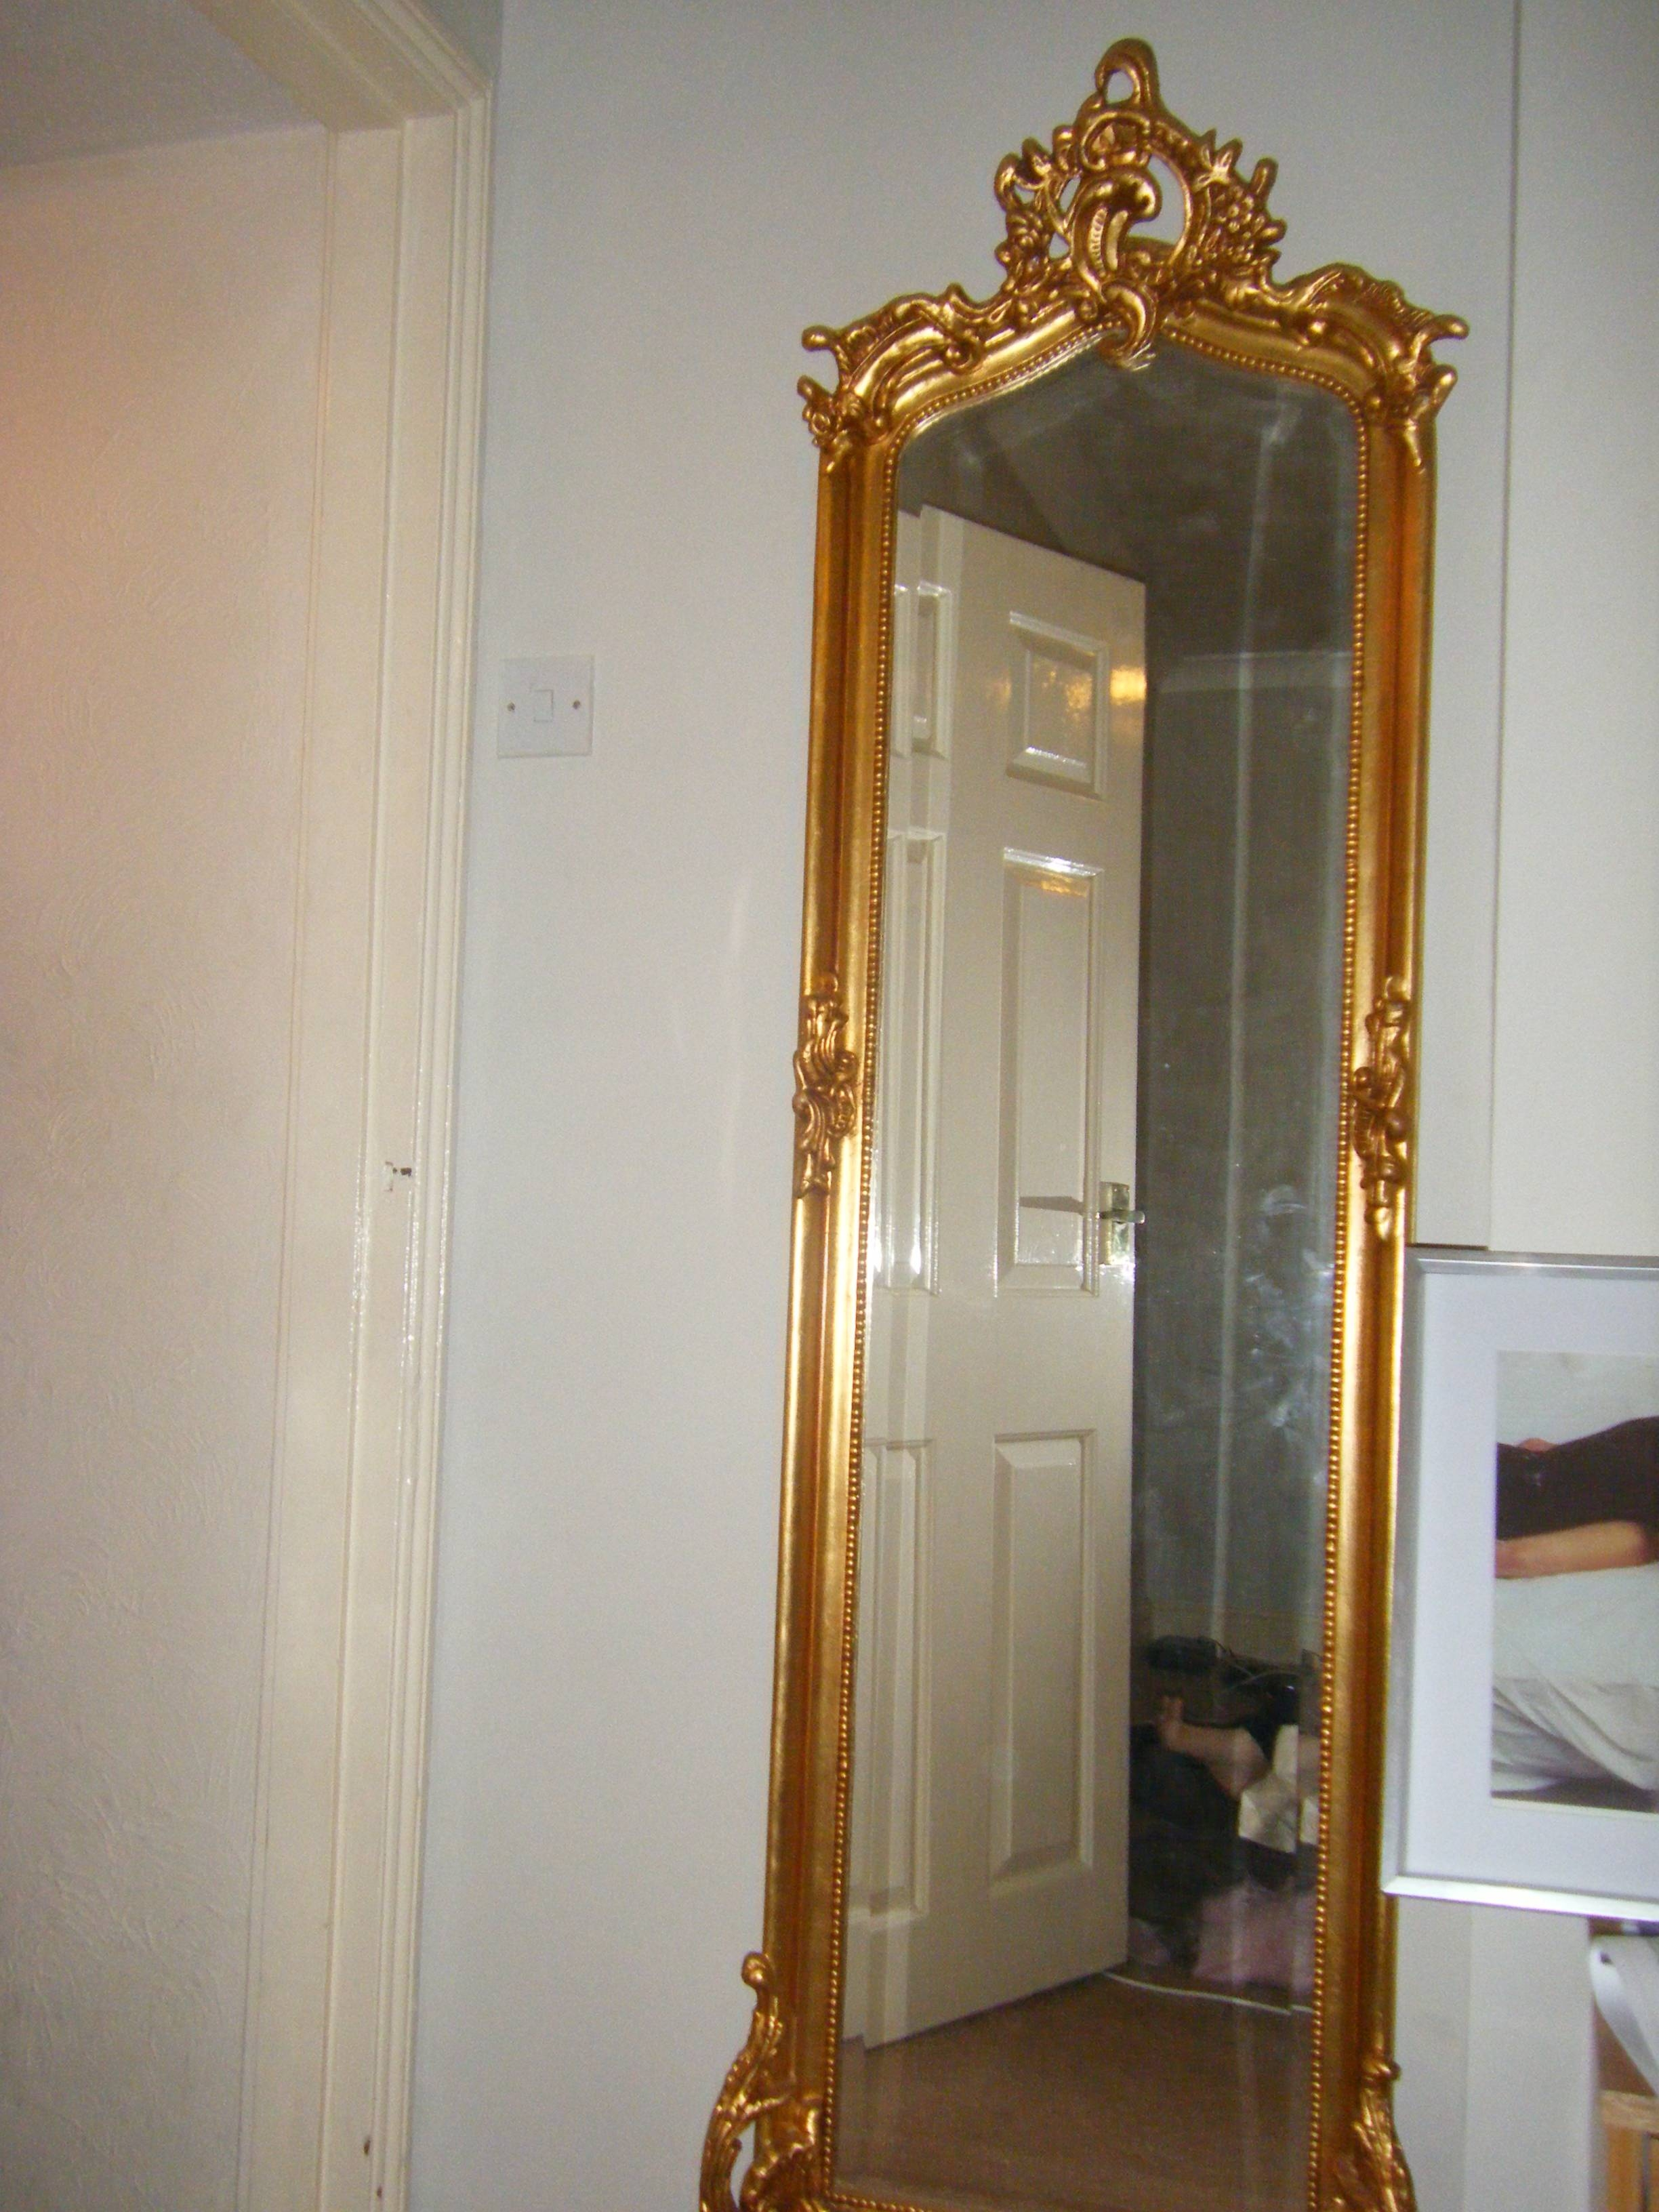 Homeware: Oval Full Length Standing Mirror | Large Floor Mirrors with Large Floor Standing Mirrors (Image 18 of 25)